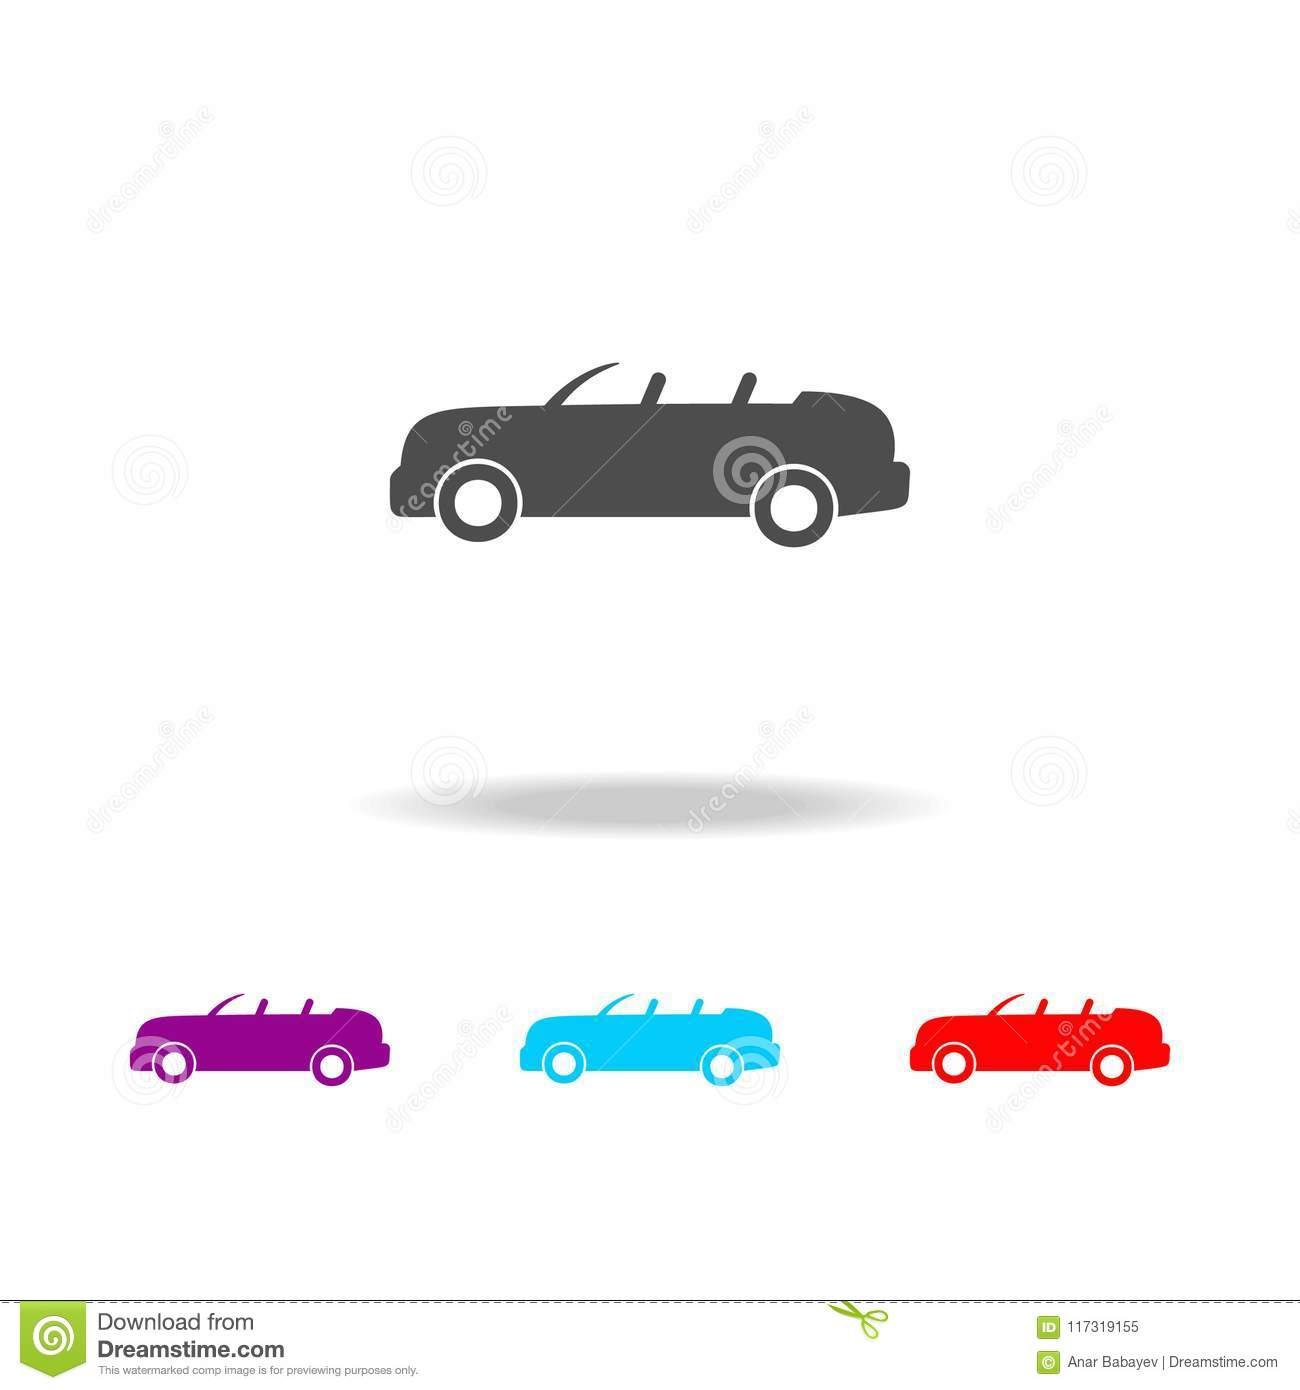 Open Top Car Icon Elements Of Cars In Multi Colored Icons Premium Quality Graphic Design Icon Simple Icon For Websites Web Des Stock Illustration Illustration Of Creative Flat 117319155